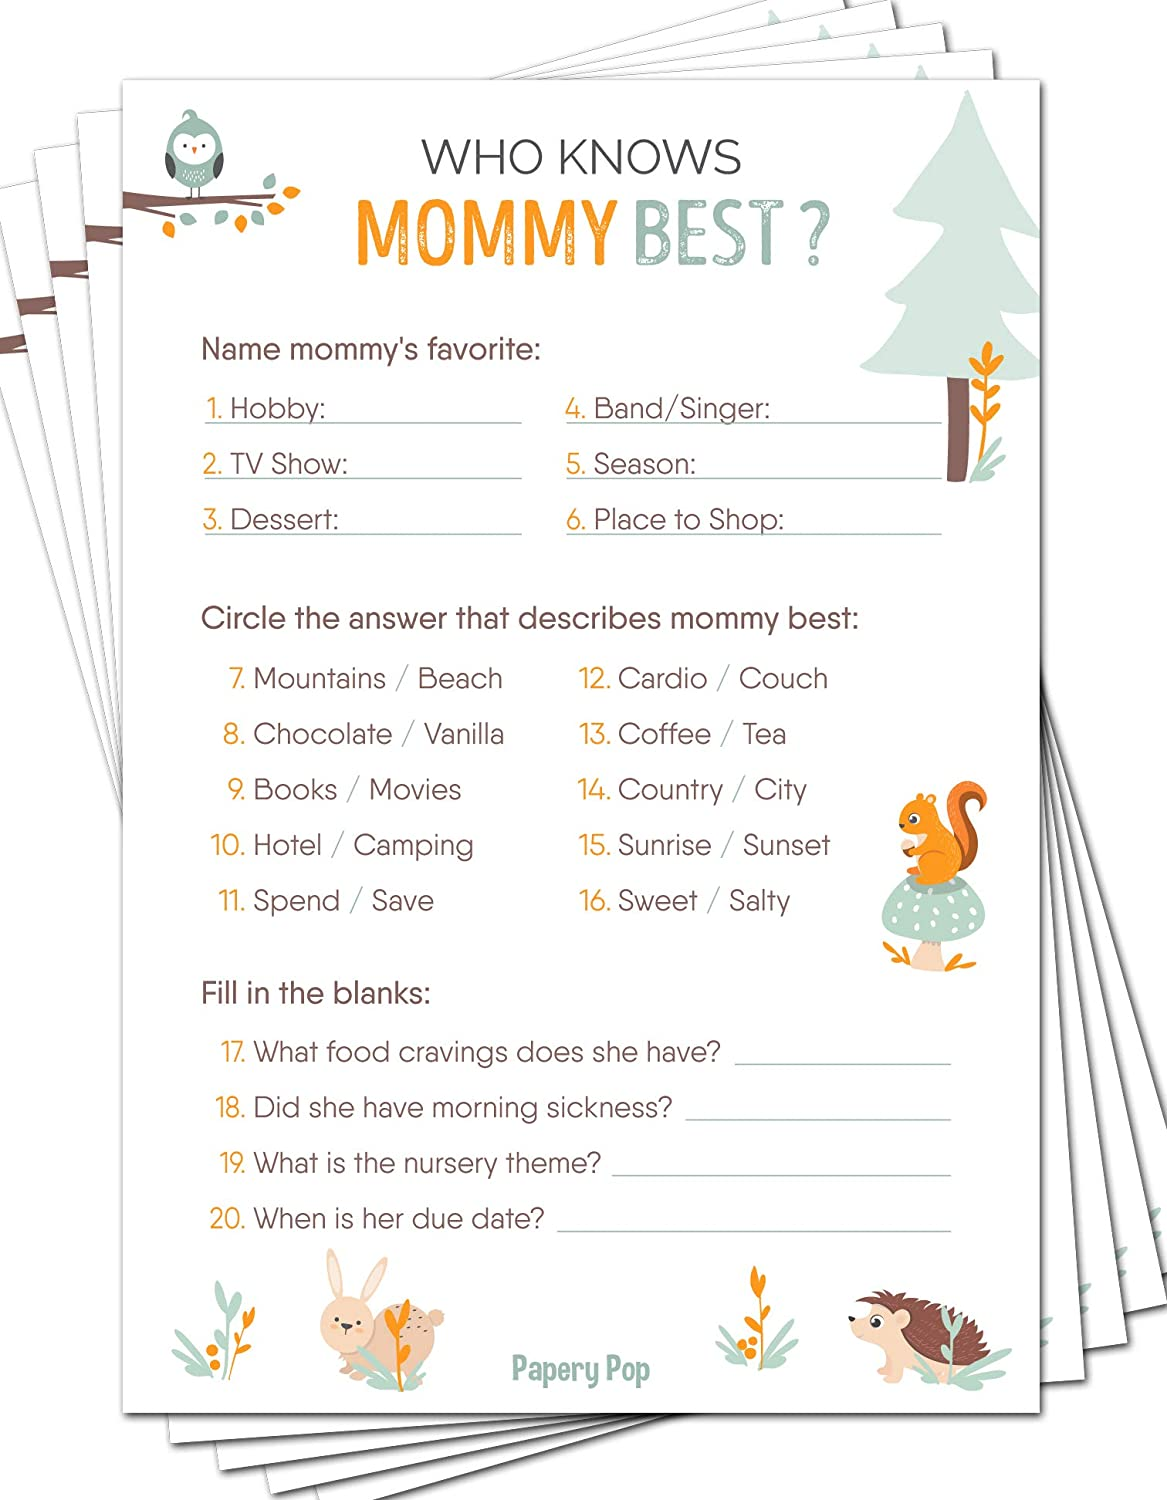 Who Knows Mommy Best Game Cards (Pack of 50) - Baby Shower Games for Boys or Girls - Gender Neutral - Party Activities Ideas Supplies - Woodland Animals